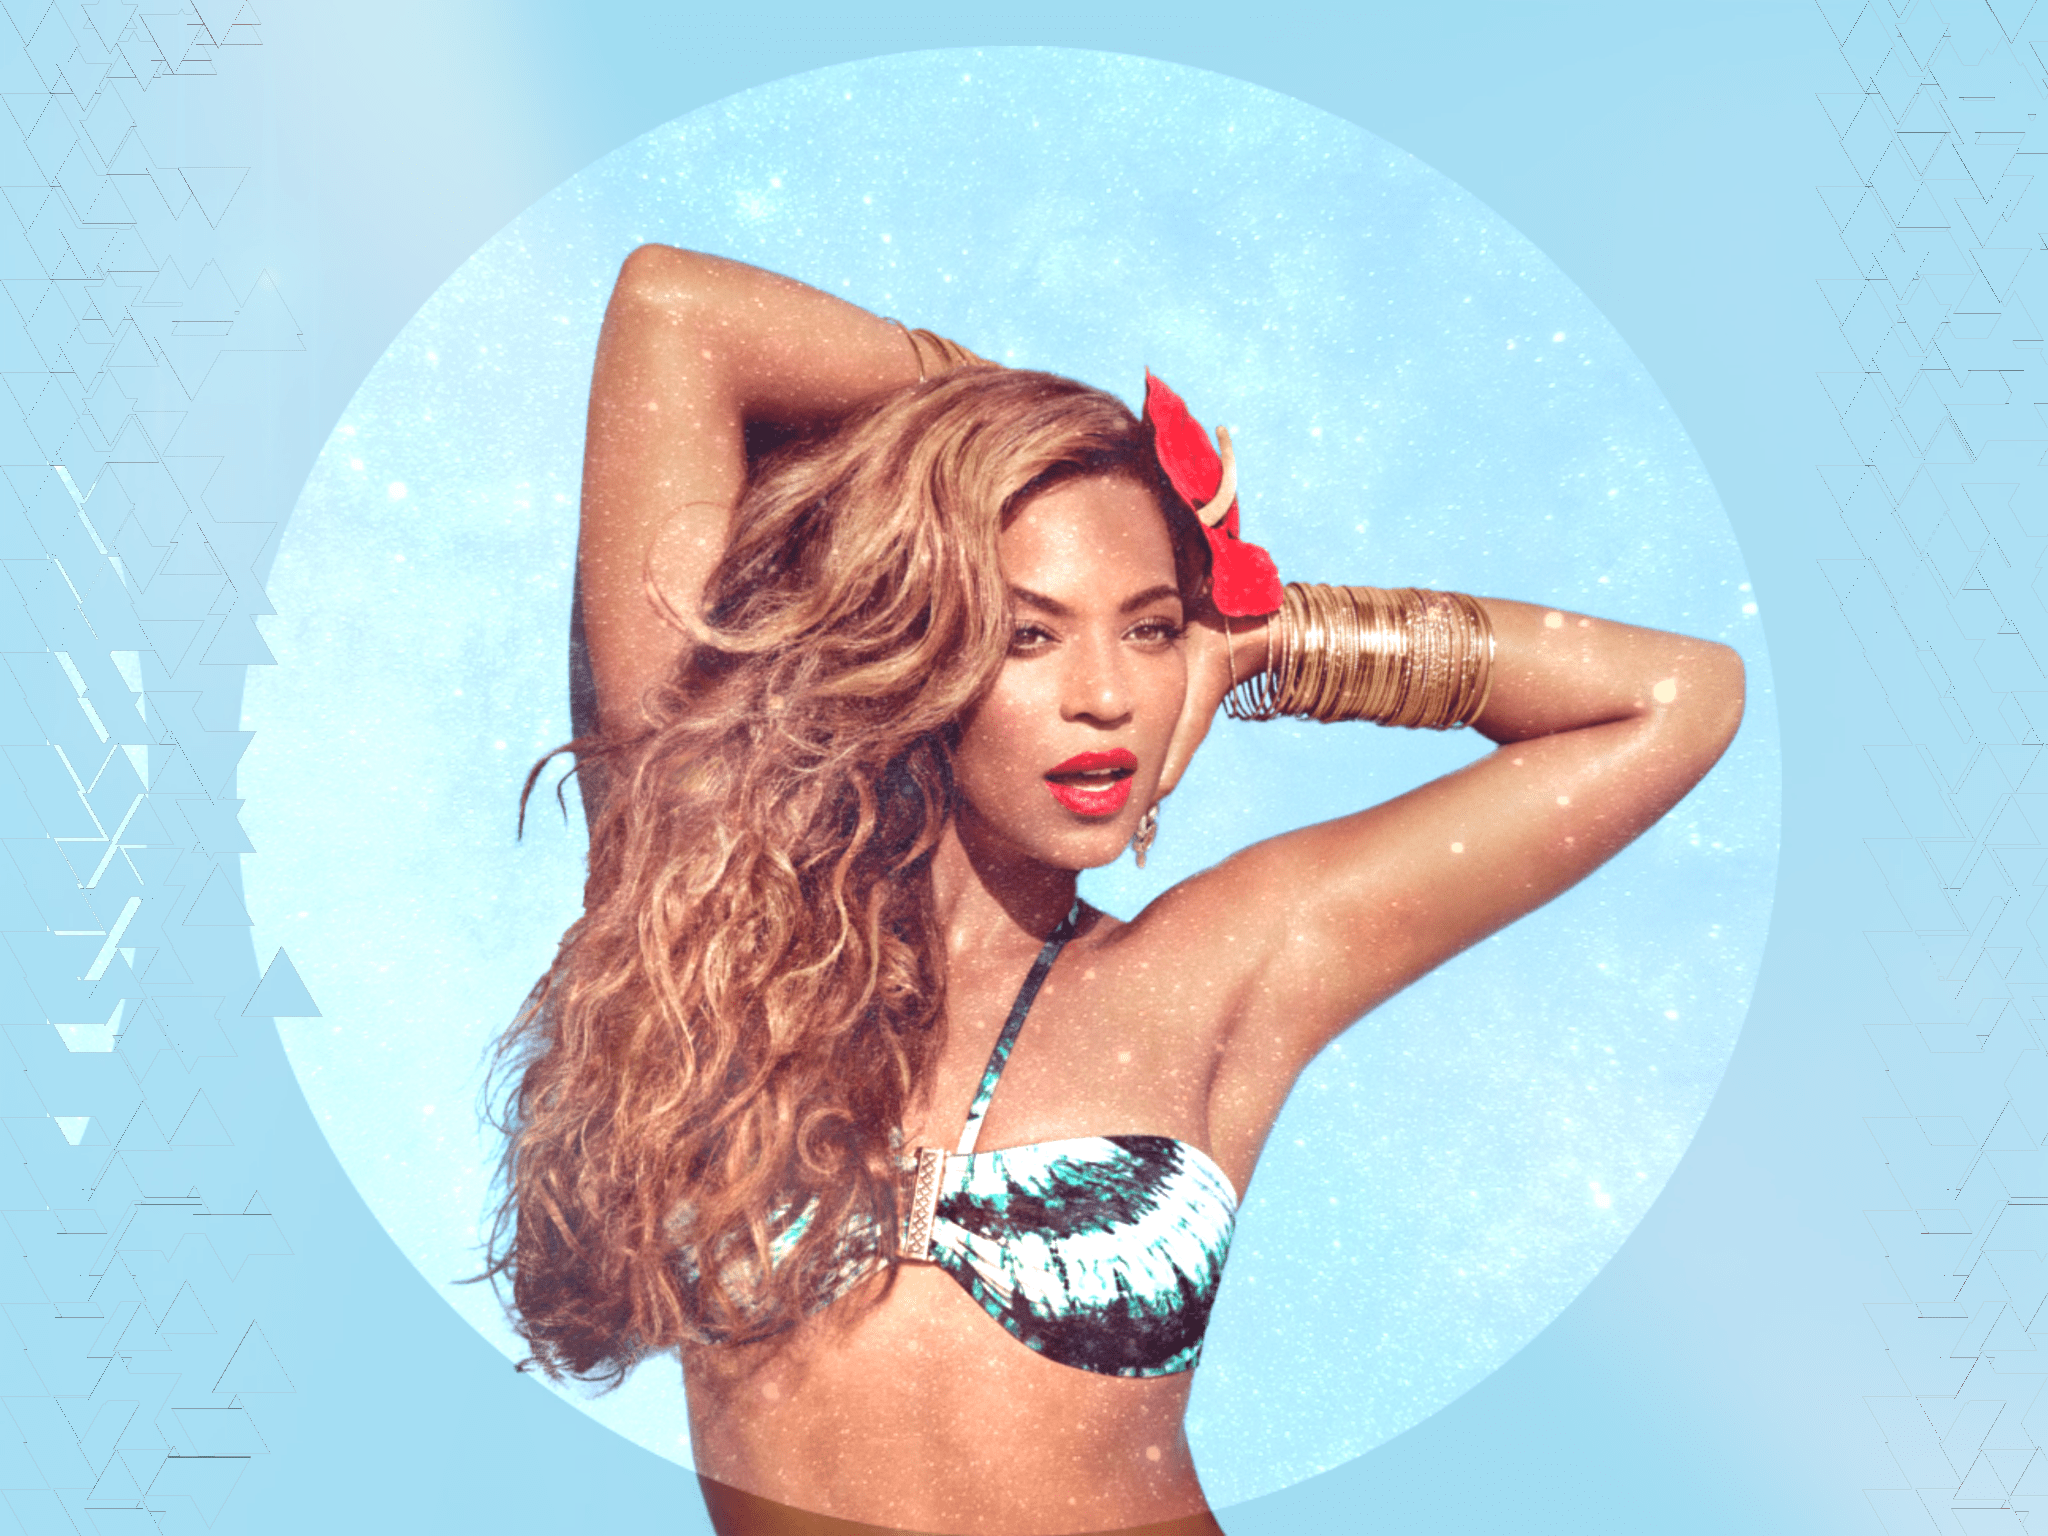 1000  Awesome beyonc Images on PicsArt freetoedit beyonce beyonceflowers beyonc beyonceglitter